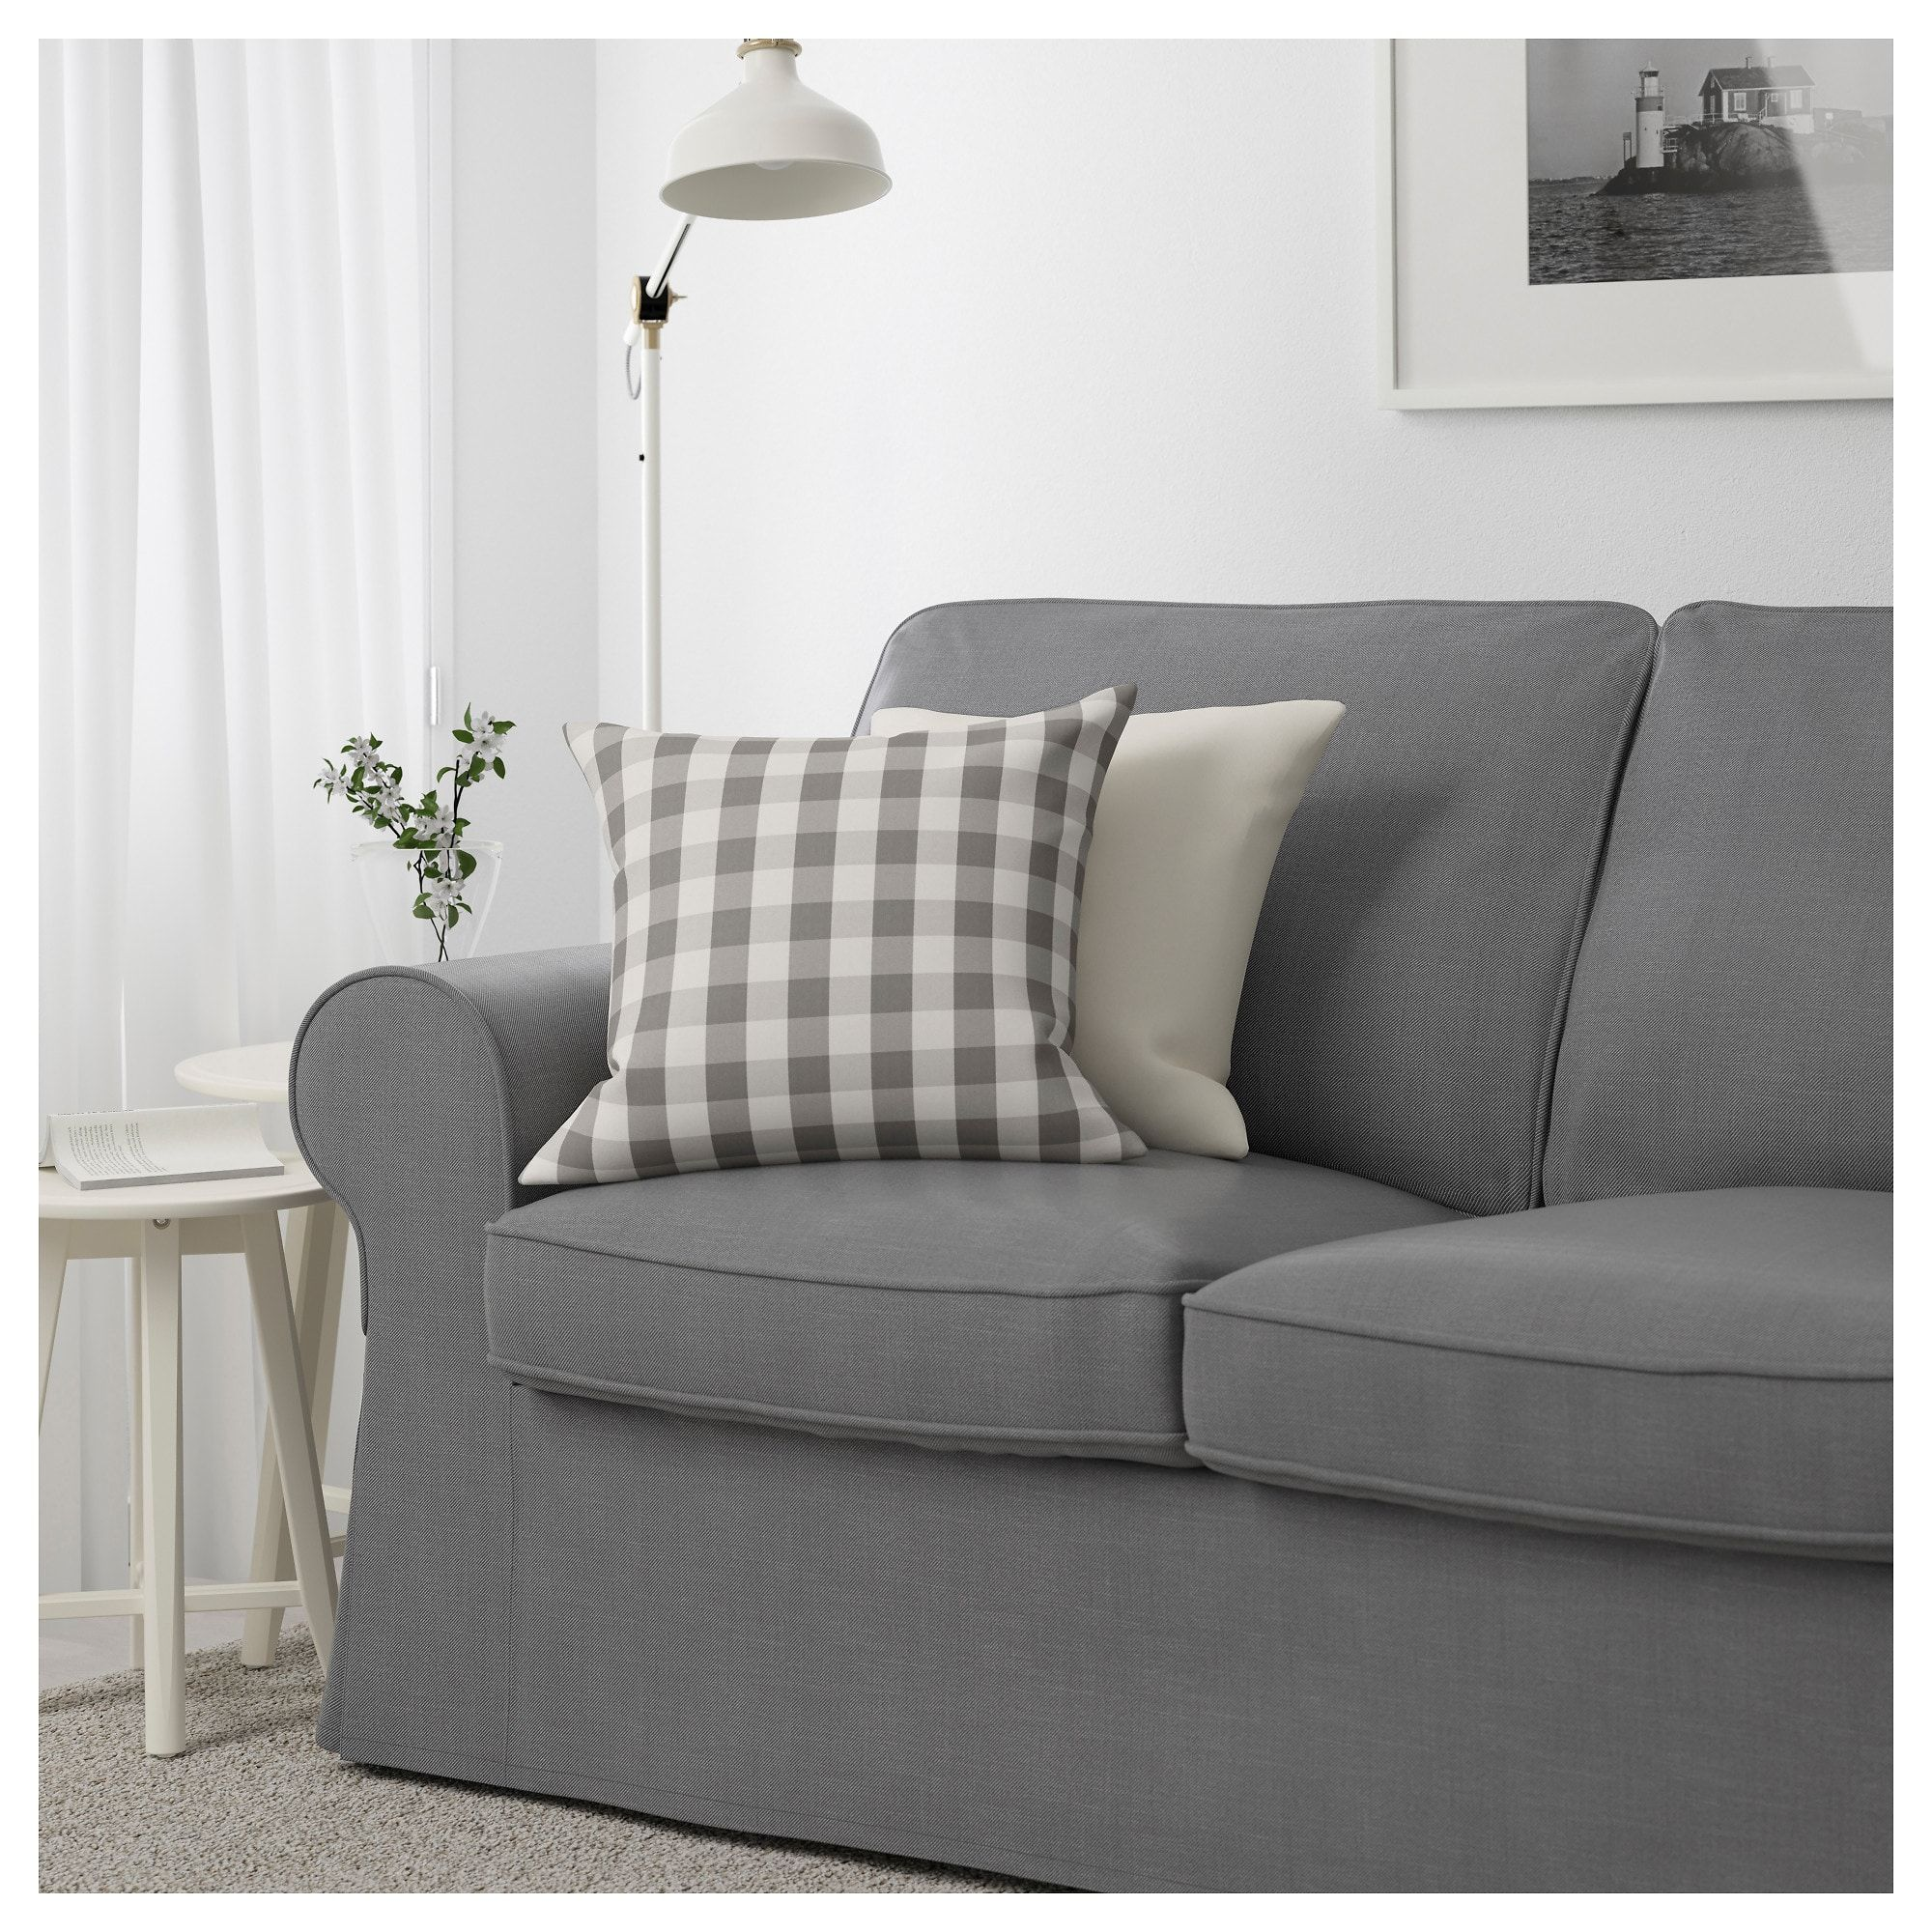 Furniture Village Hartford Sofa Vimle Loveseat Gunnared Medium Gray For The Home Ikea Sofa